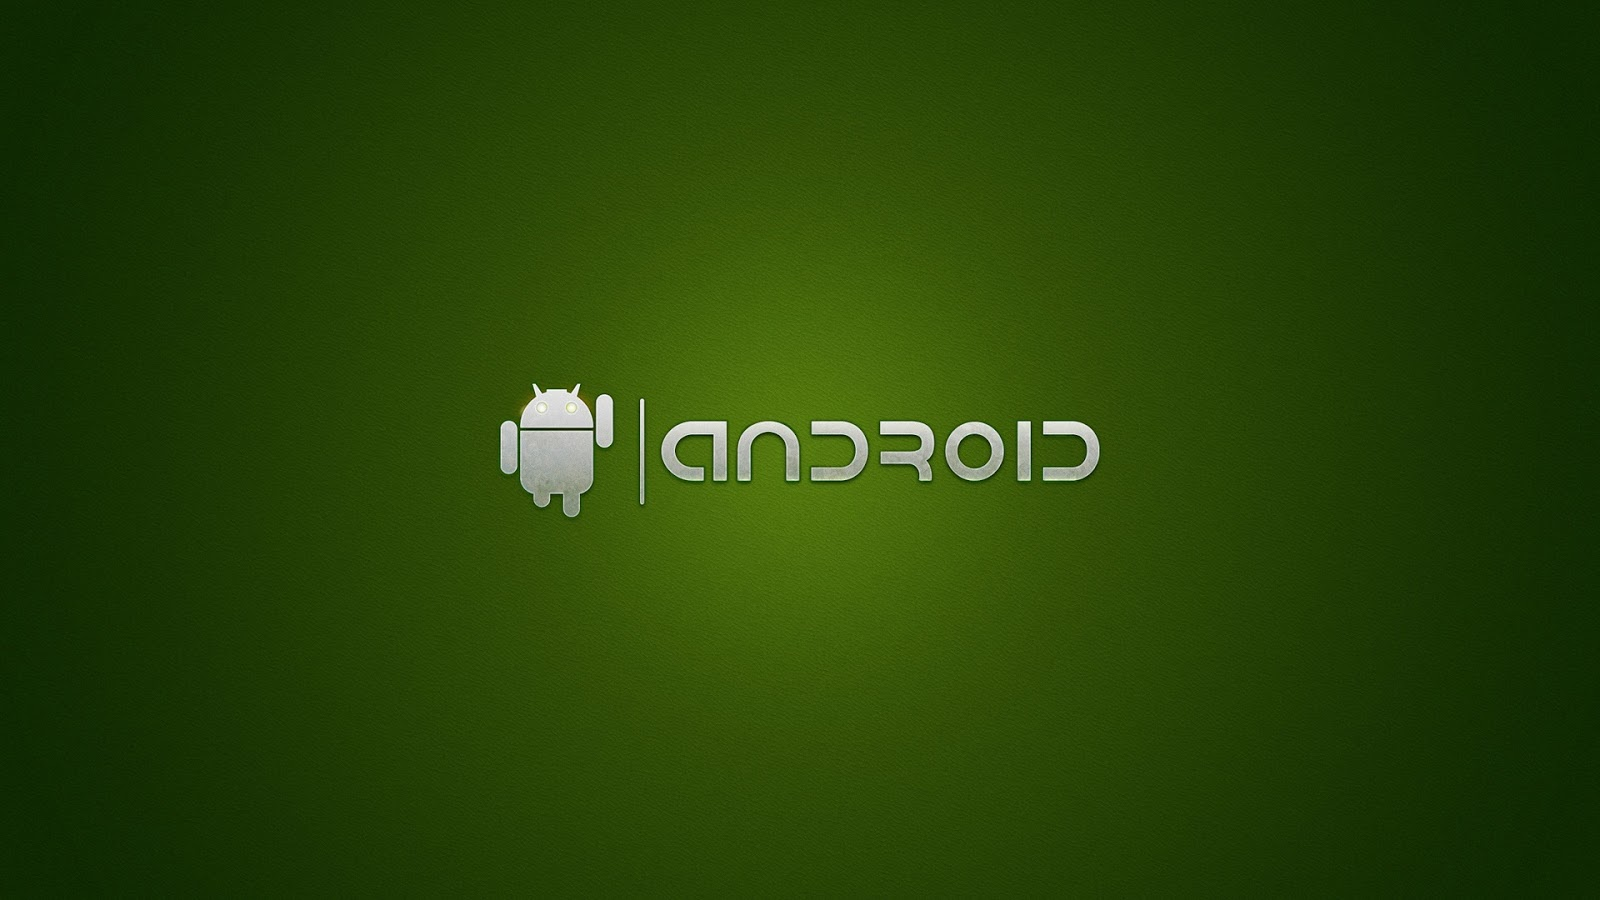 Cara Instal Android di PC/Laptop | Blog Arief's